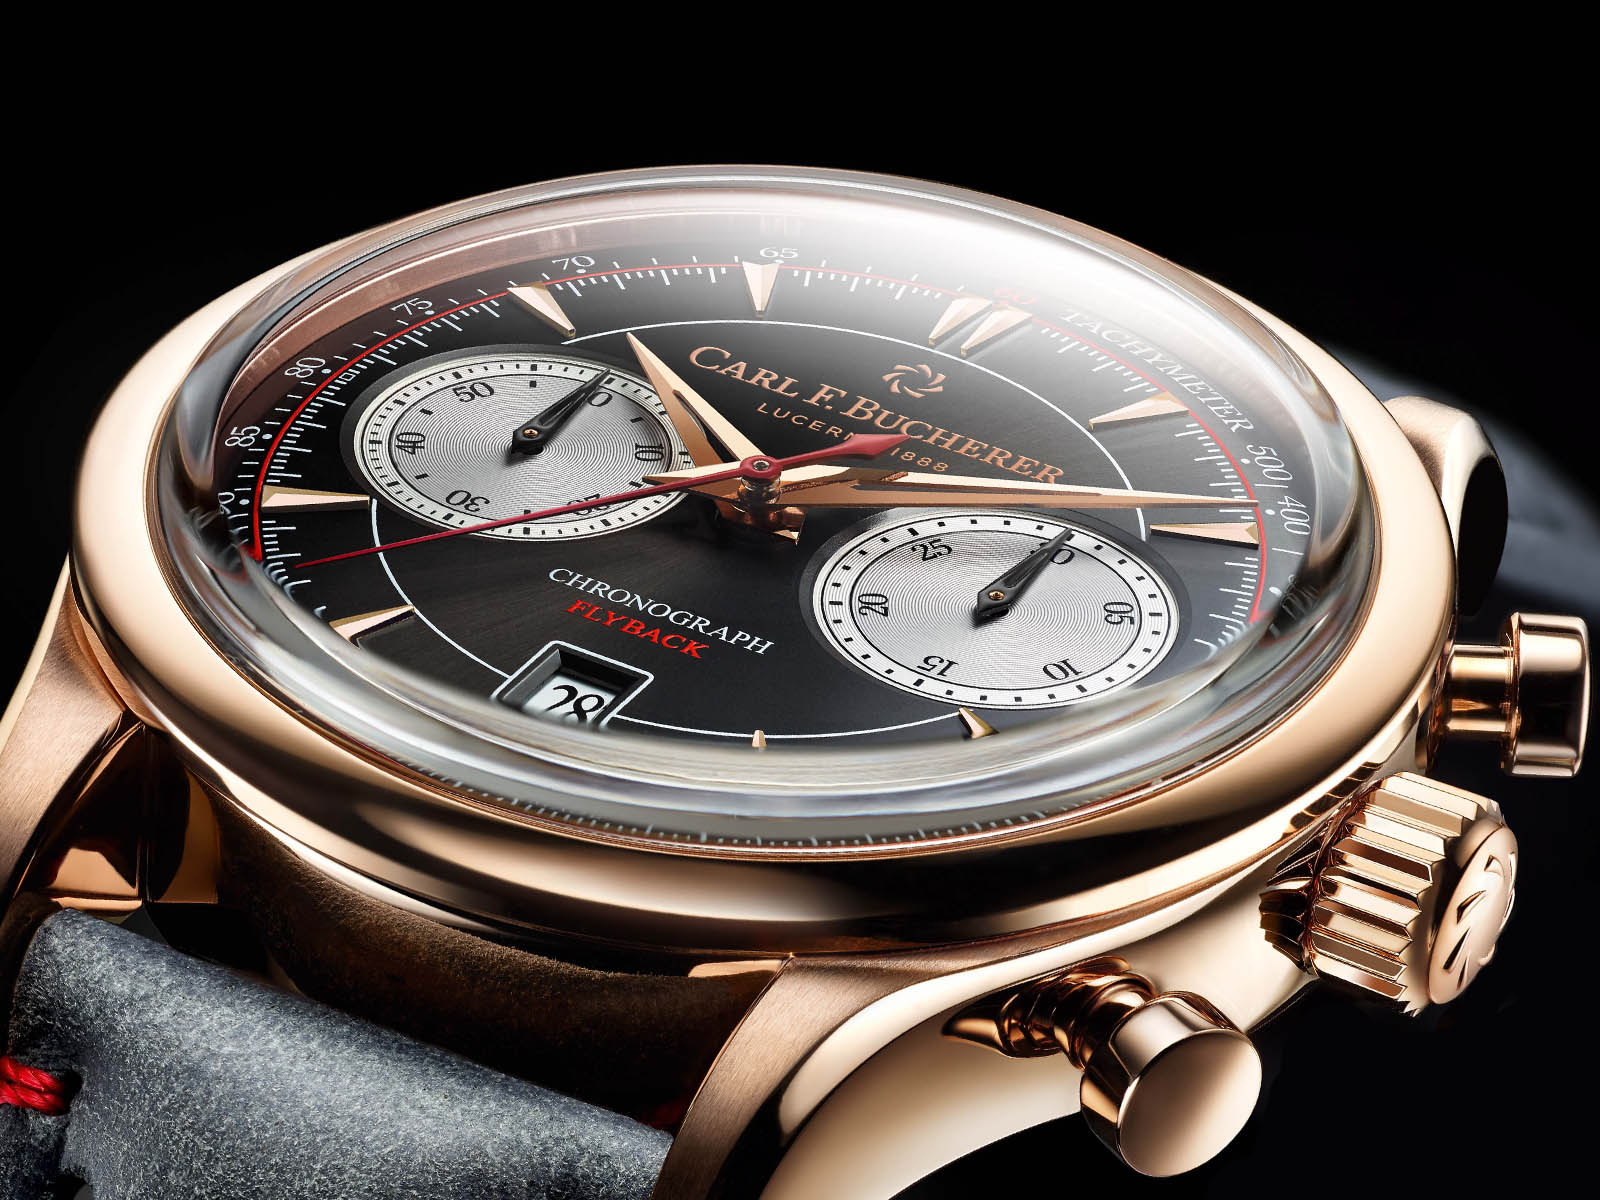 00-10919-03-33-02-carl-f-bucherer-manero-flyback-rose-gold-6.jpg